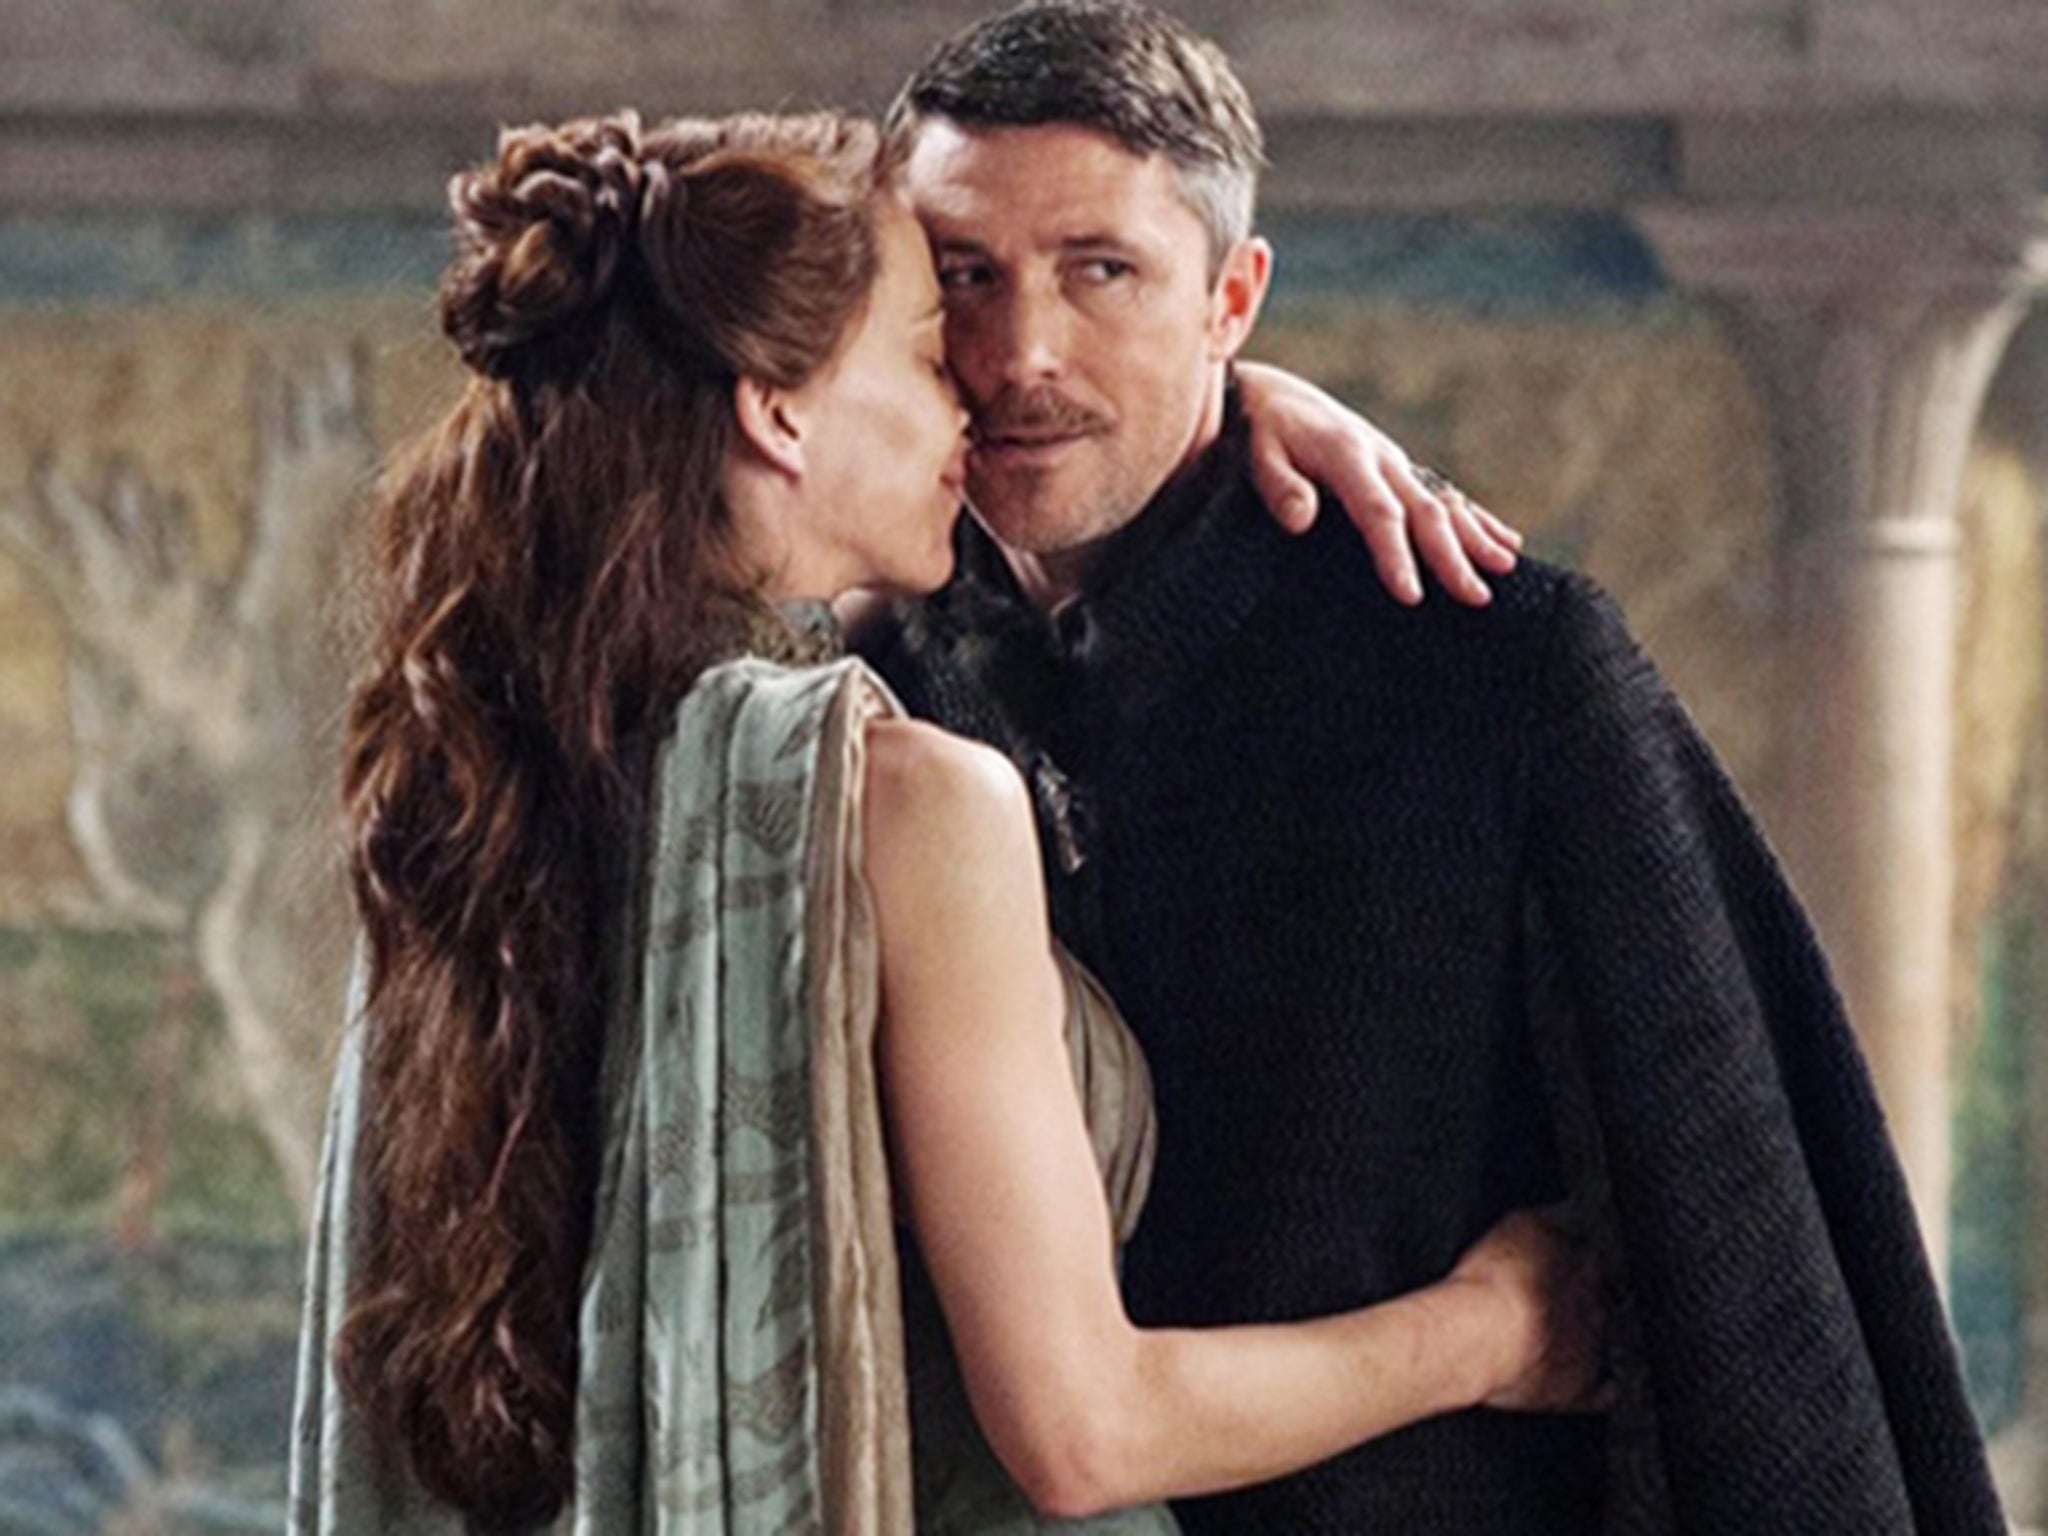 incest 3D Poppe-w Game of Thrones: 10 most shocking moments from blood and beheadings to rape  and incest | The Independent